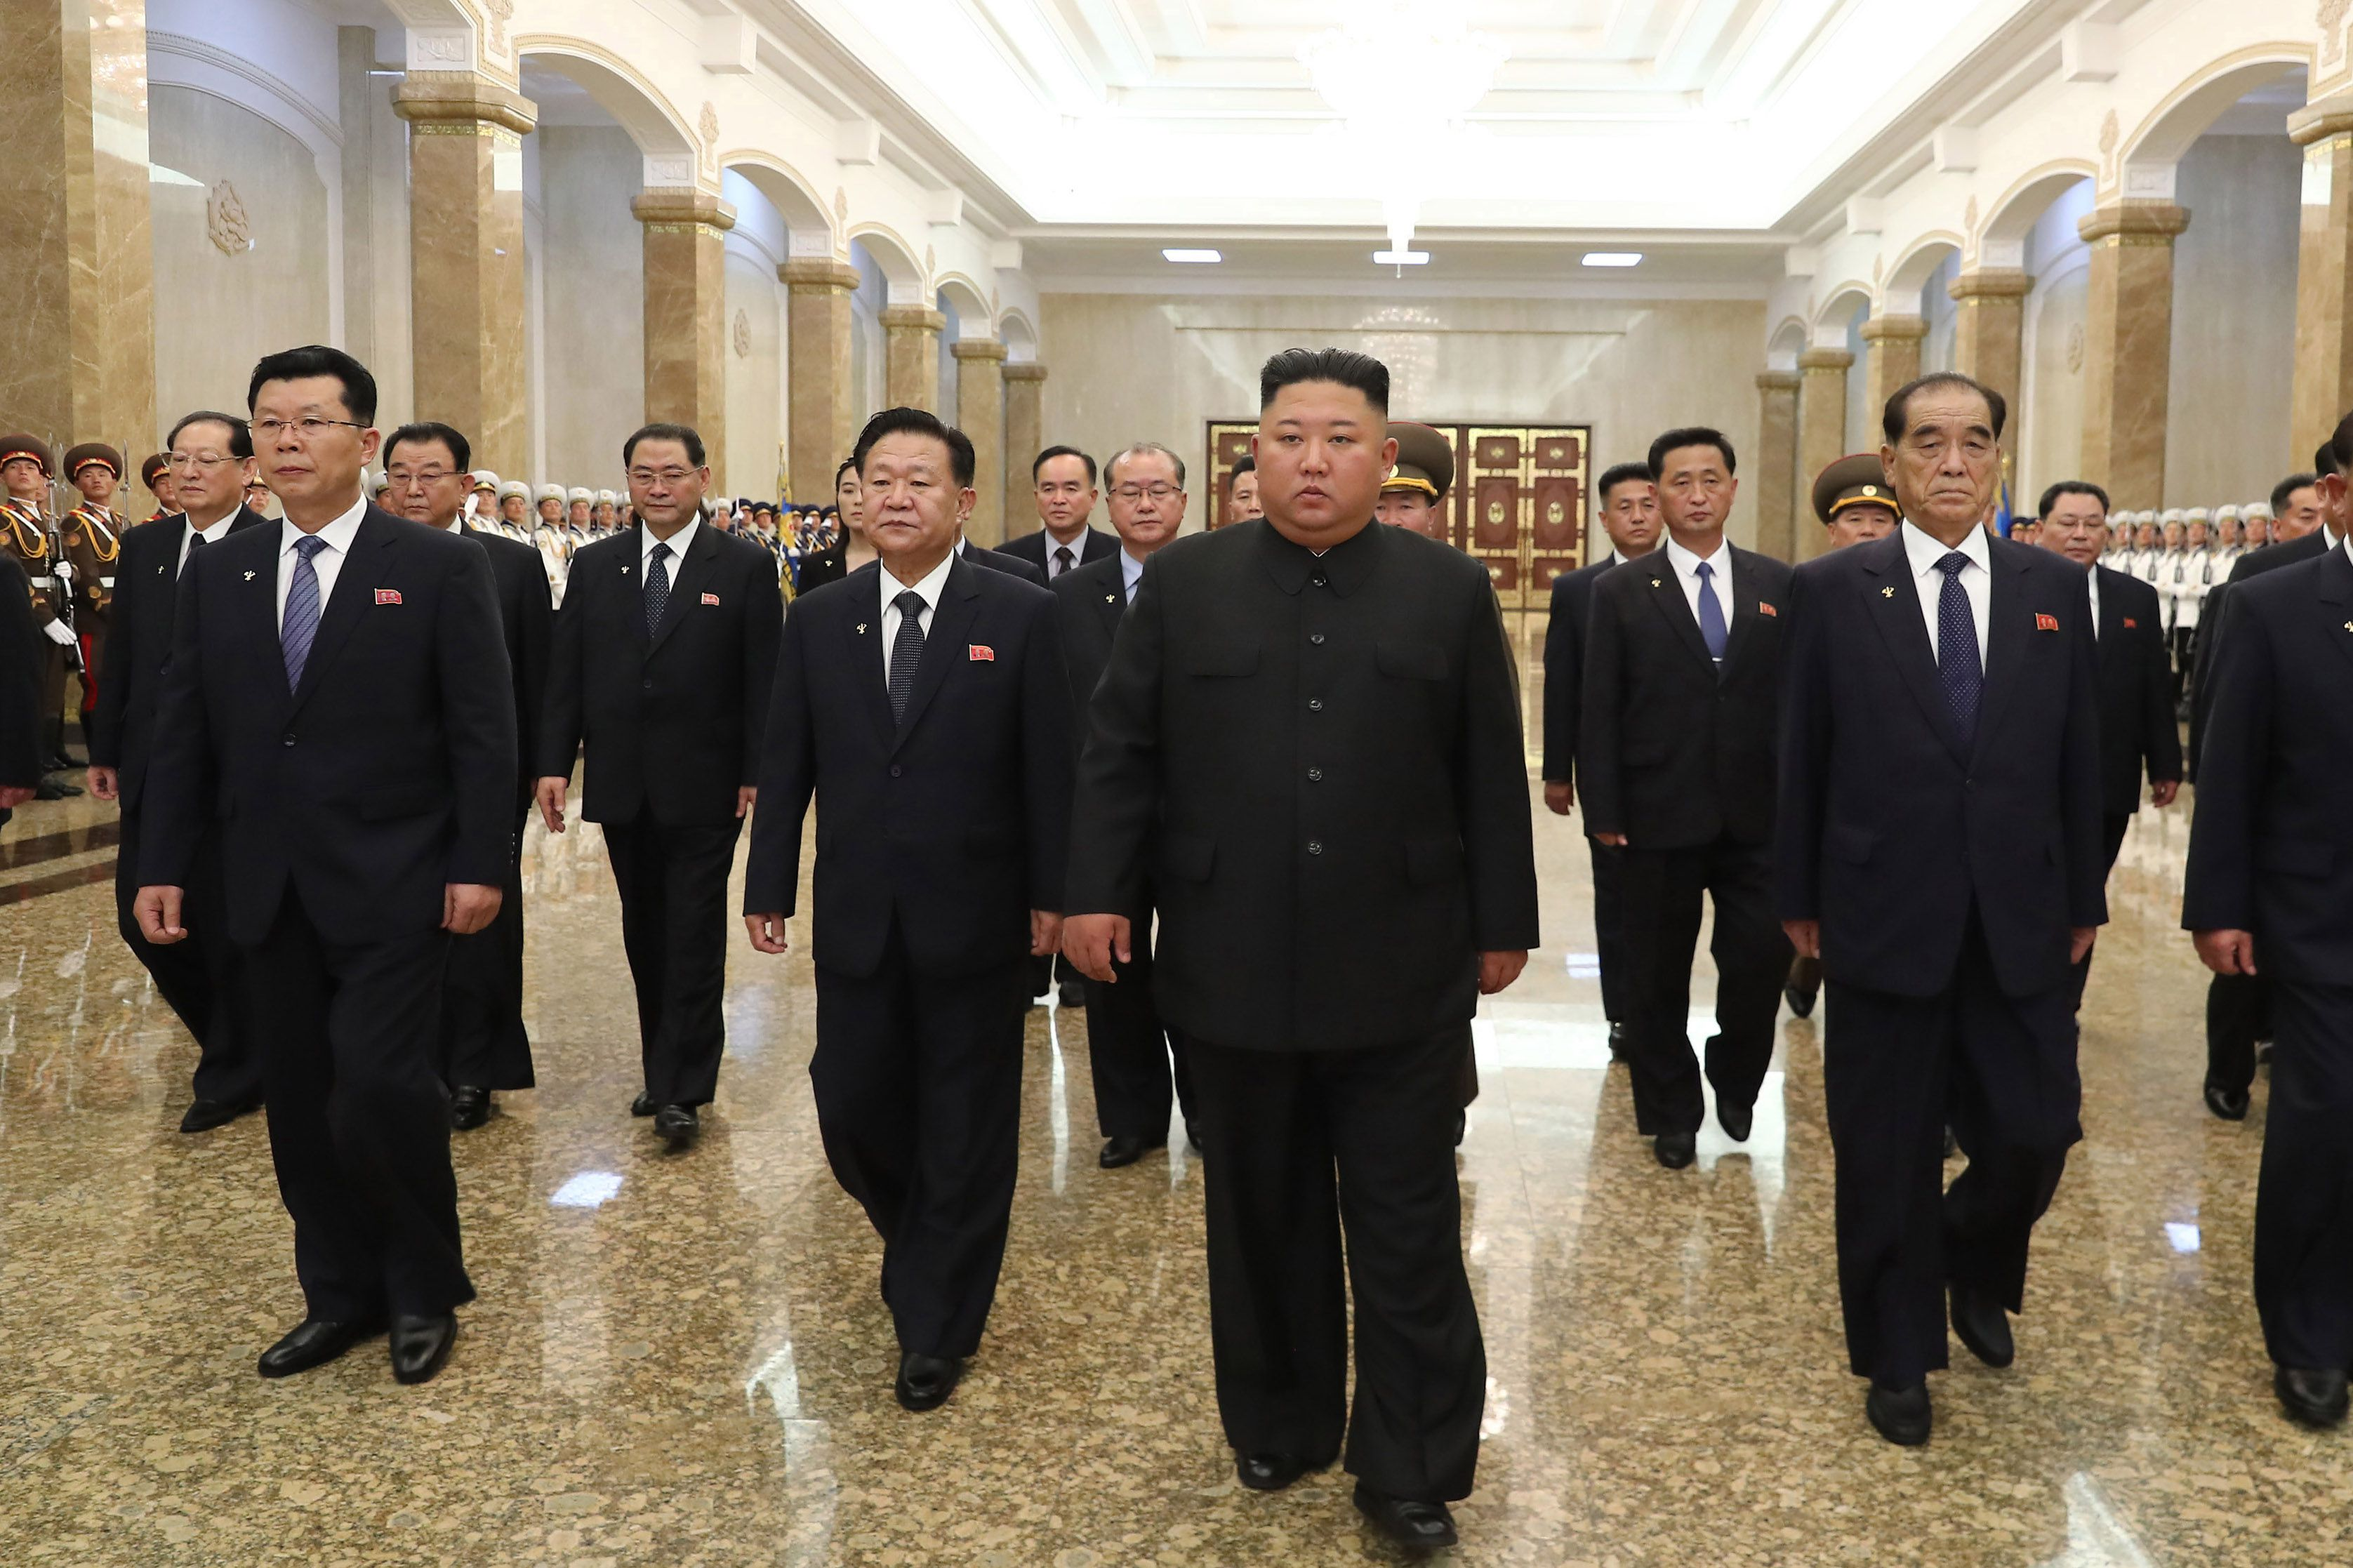 07/07/2020 07 July 2020, North Korea, Pyongyang: North Korean leader Kim Jong-un (C) visits the Kumsusan Palace of the Sun in Pyongyang to pay tribute to his grandfather and North Korea's founder, Kim Il-sung, on the occasion of the 26th anniversary of the former leader's death. Photo: -/YNA/dpa POLITICA INTERNACIONAL -/YNA/dpa